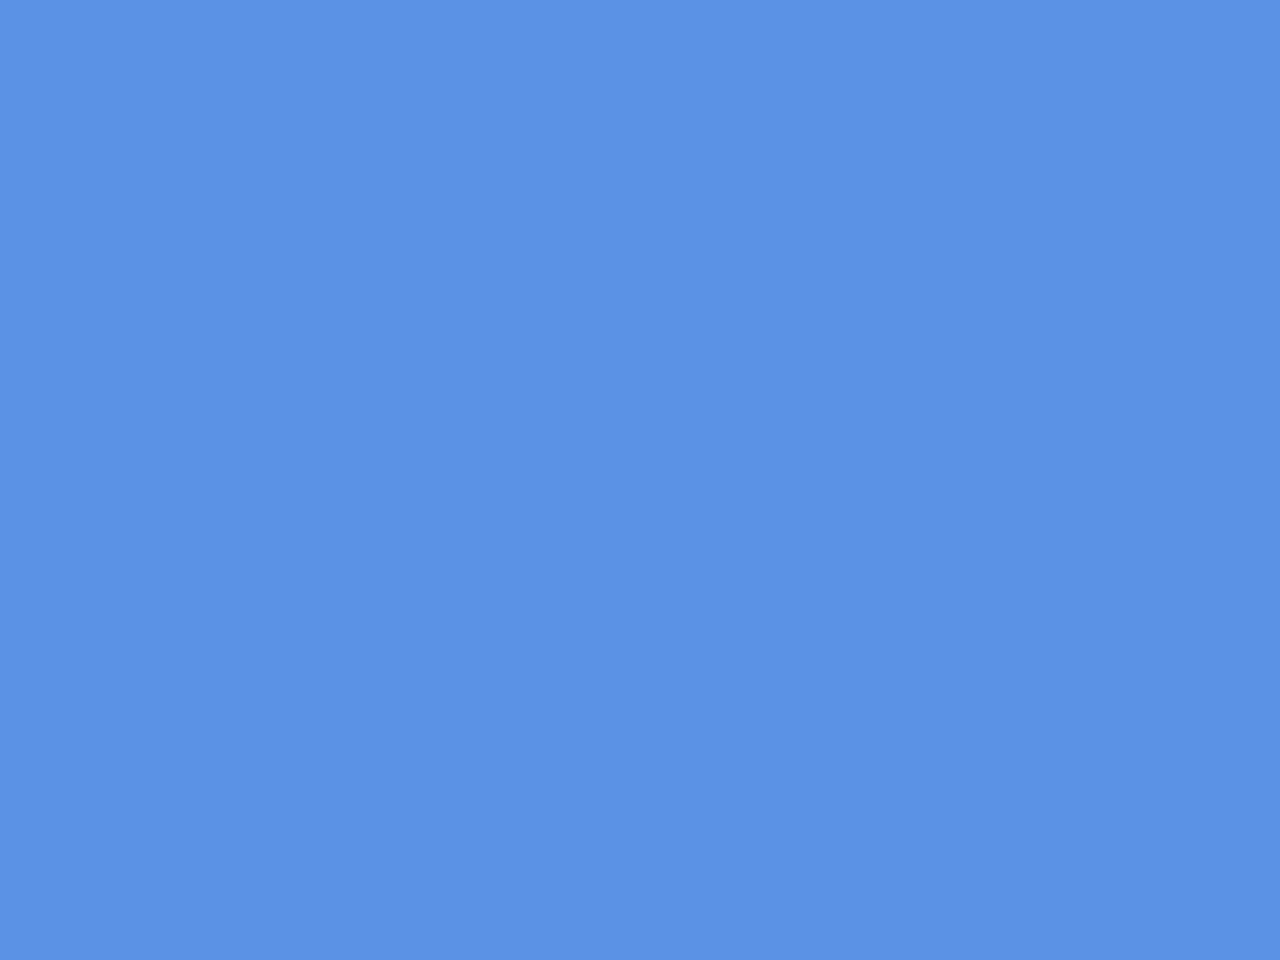 1280x960 United Nations Blue Solid Color Background